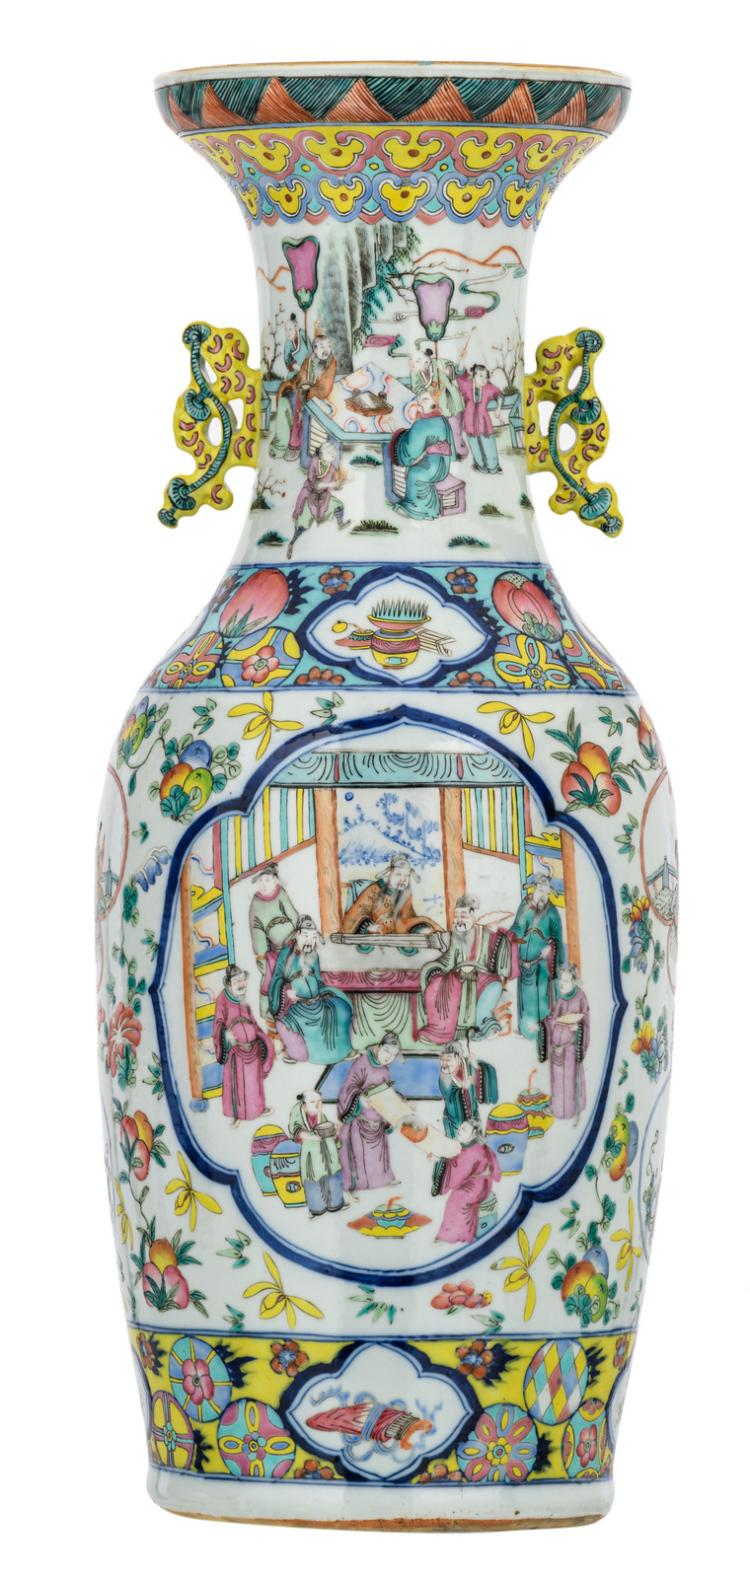 A Chinese famille rose floral decorated vase with auspicious symbols, the roundels with various court and garden scenes, H 60 cm